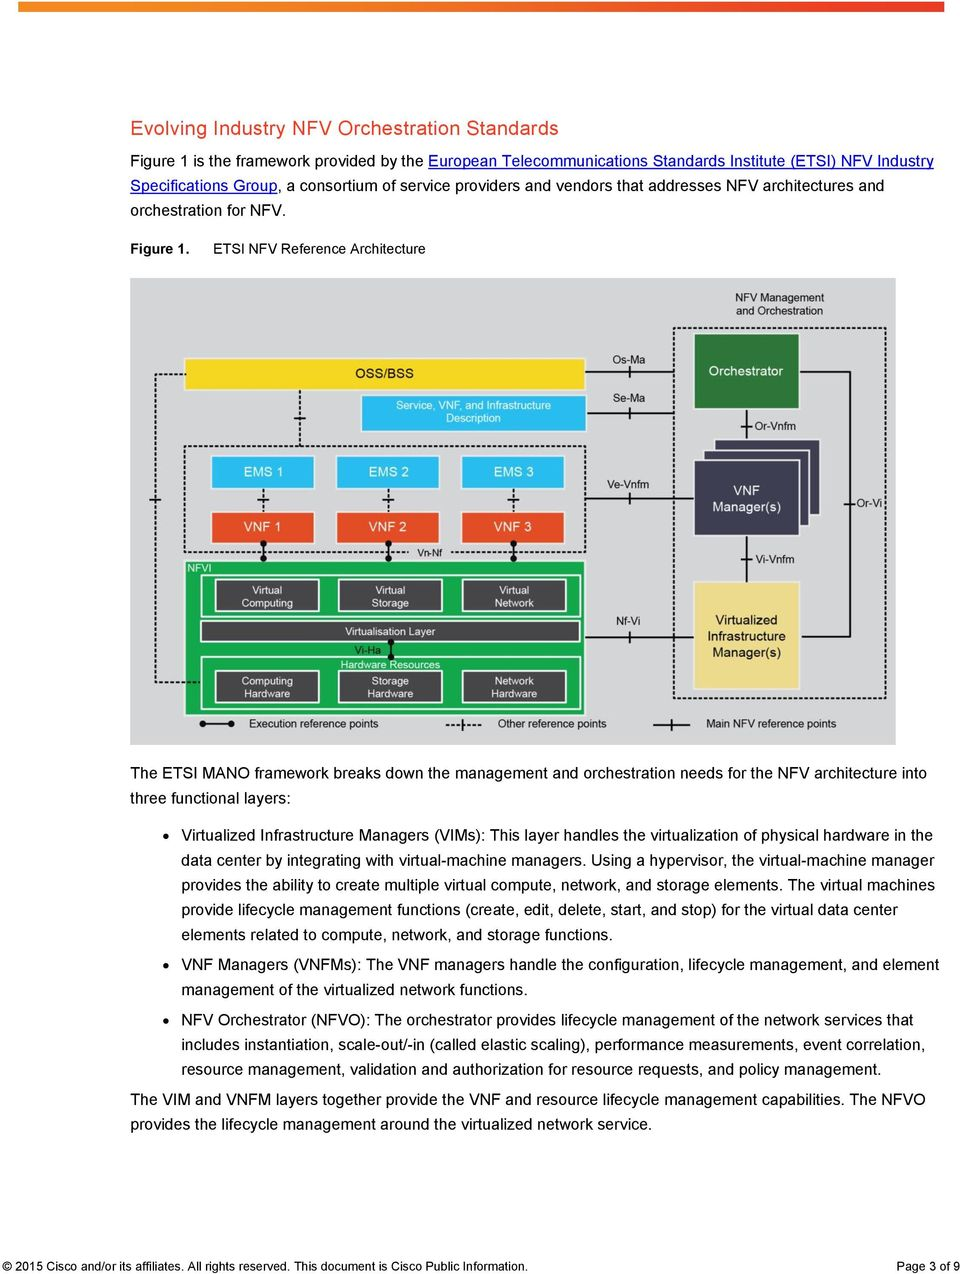 ETSI NFV Reference Architecture The ETSI MANO framework breaks down the management and orchestration needs for the NFV architecture into three functional layers: Virtualized Infrastructure Managers